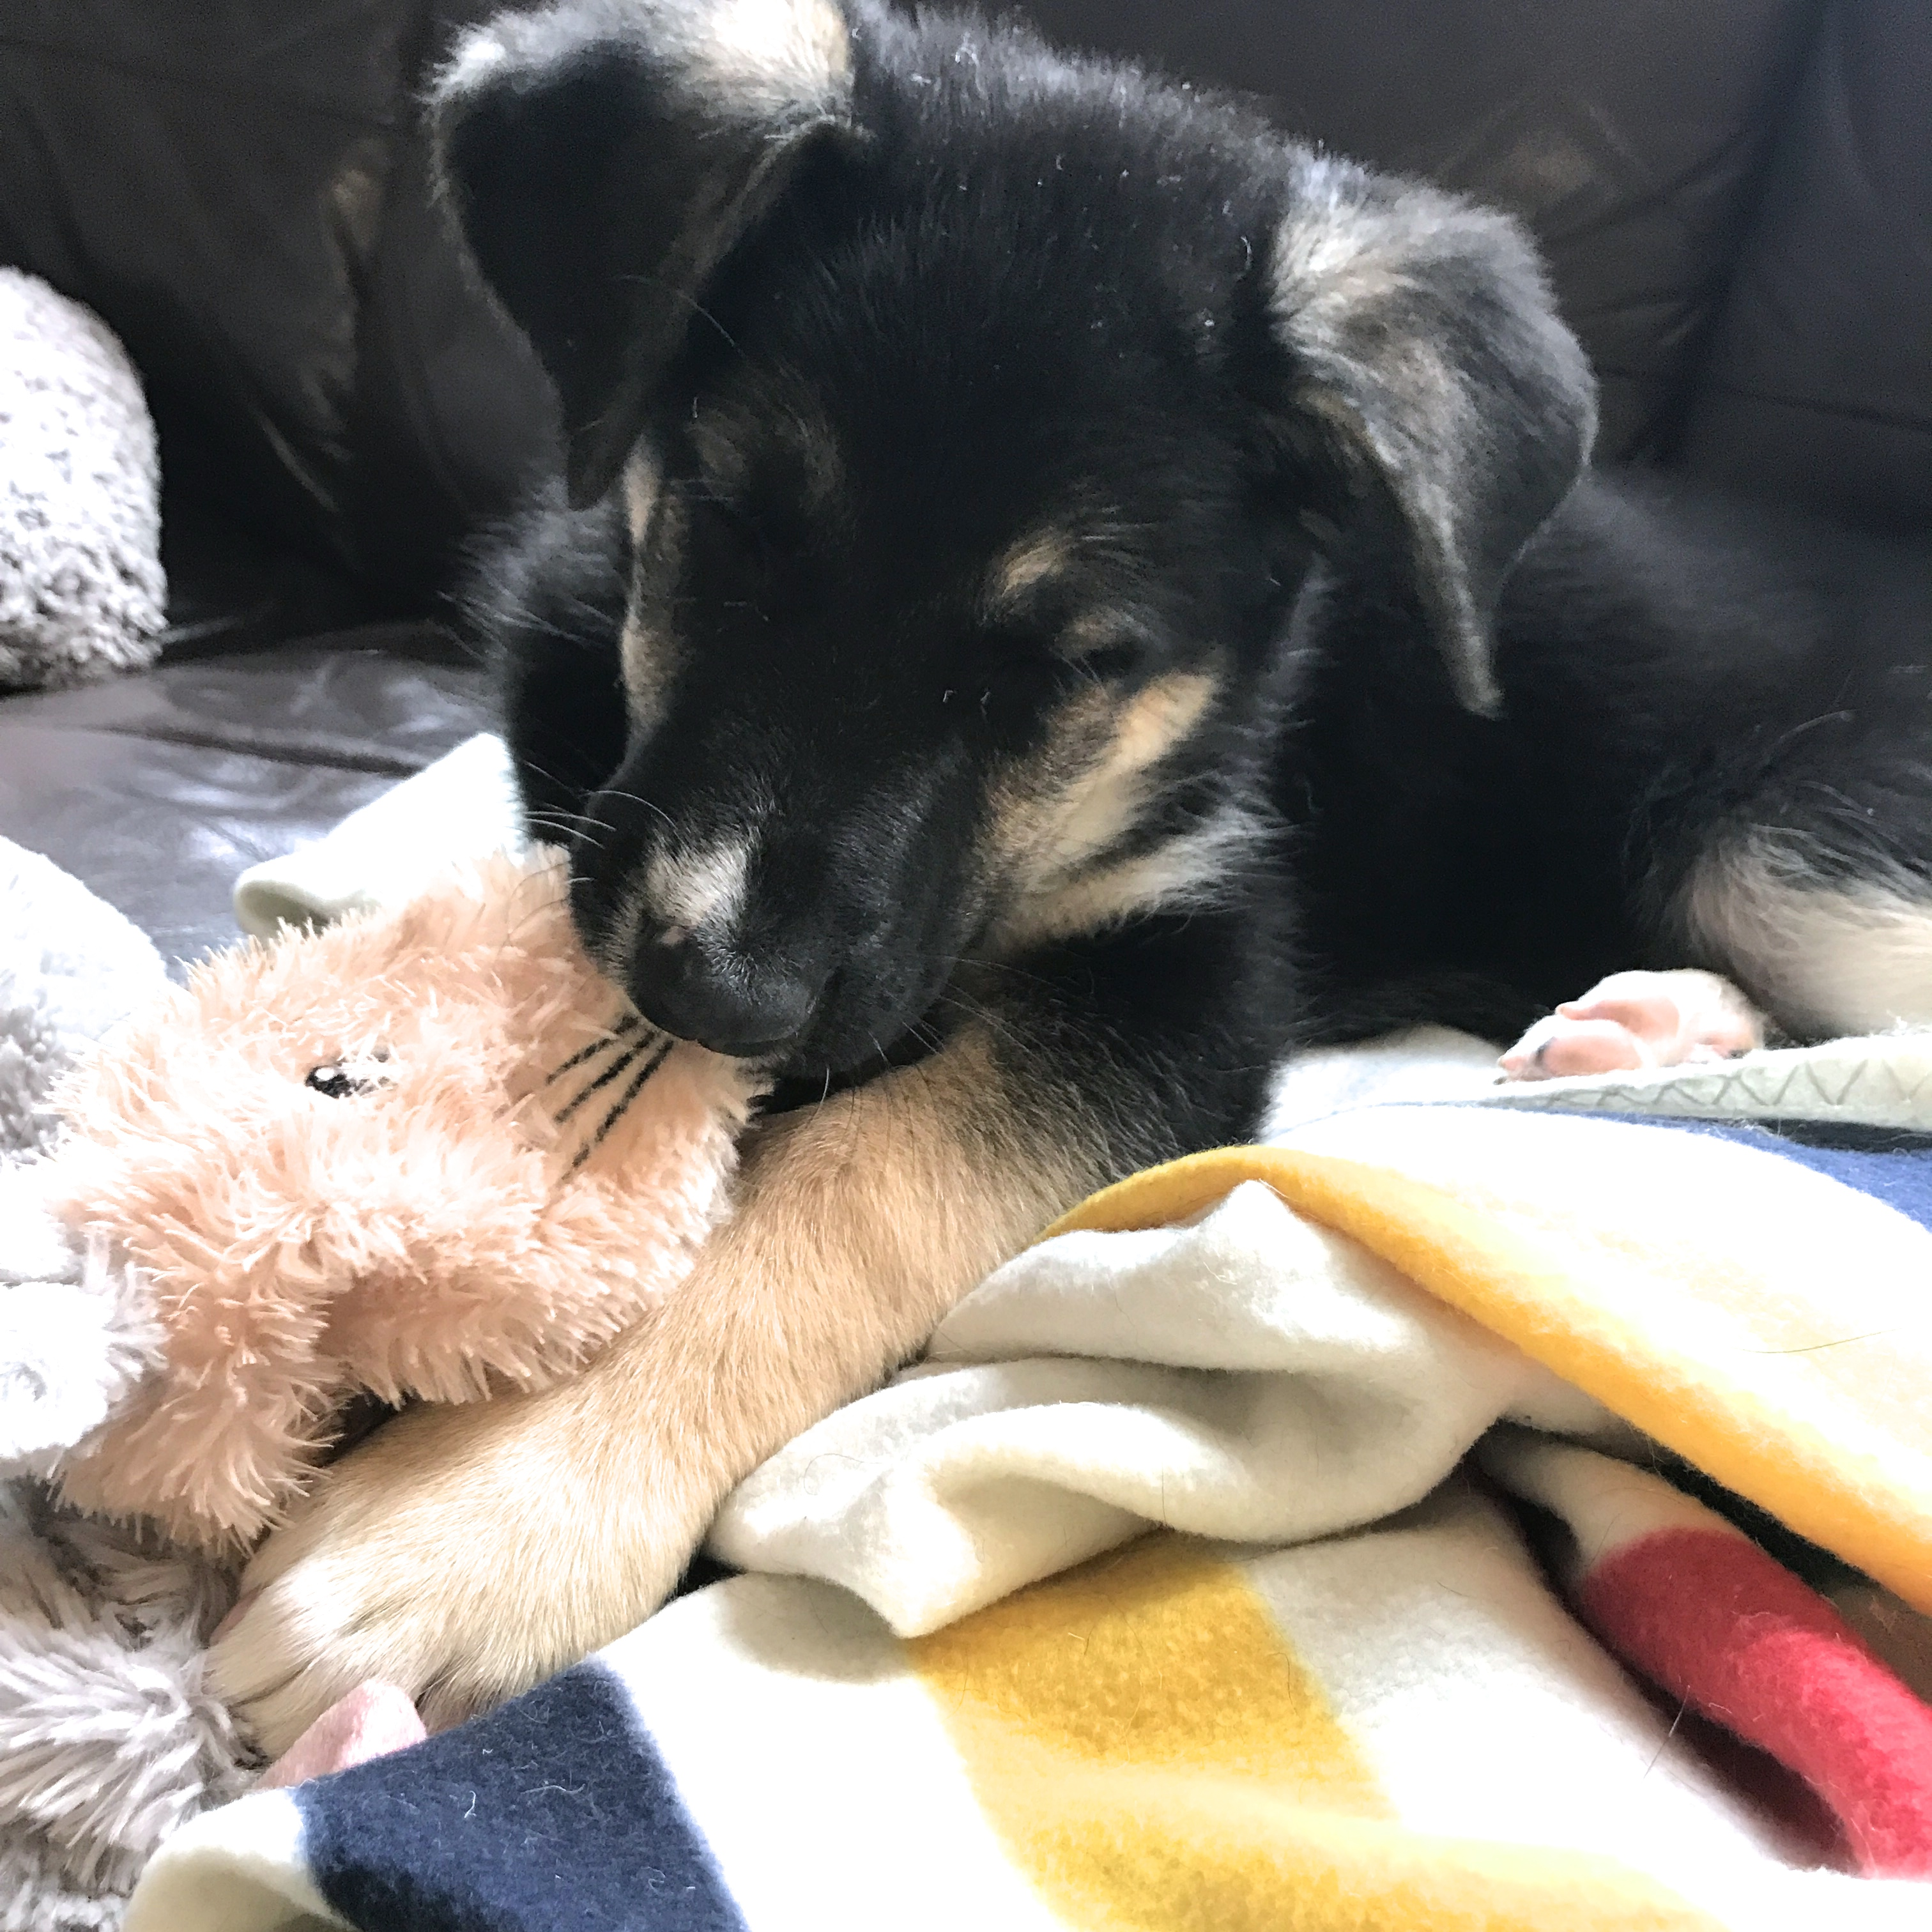 Puppy with toy and Hudson's Bay Blanket.